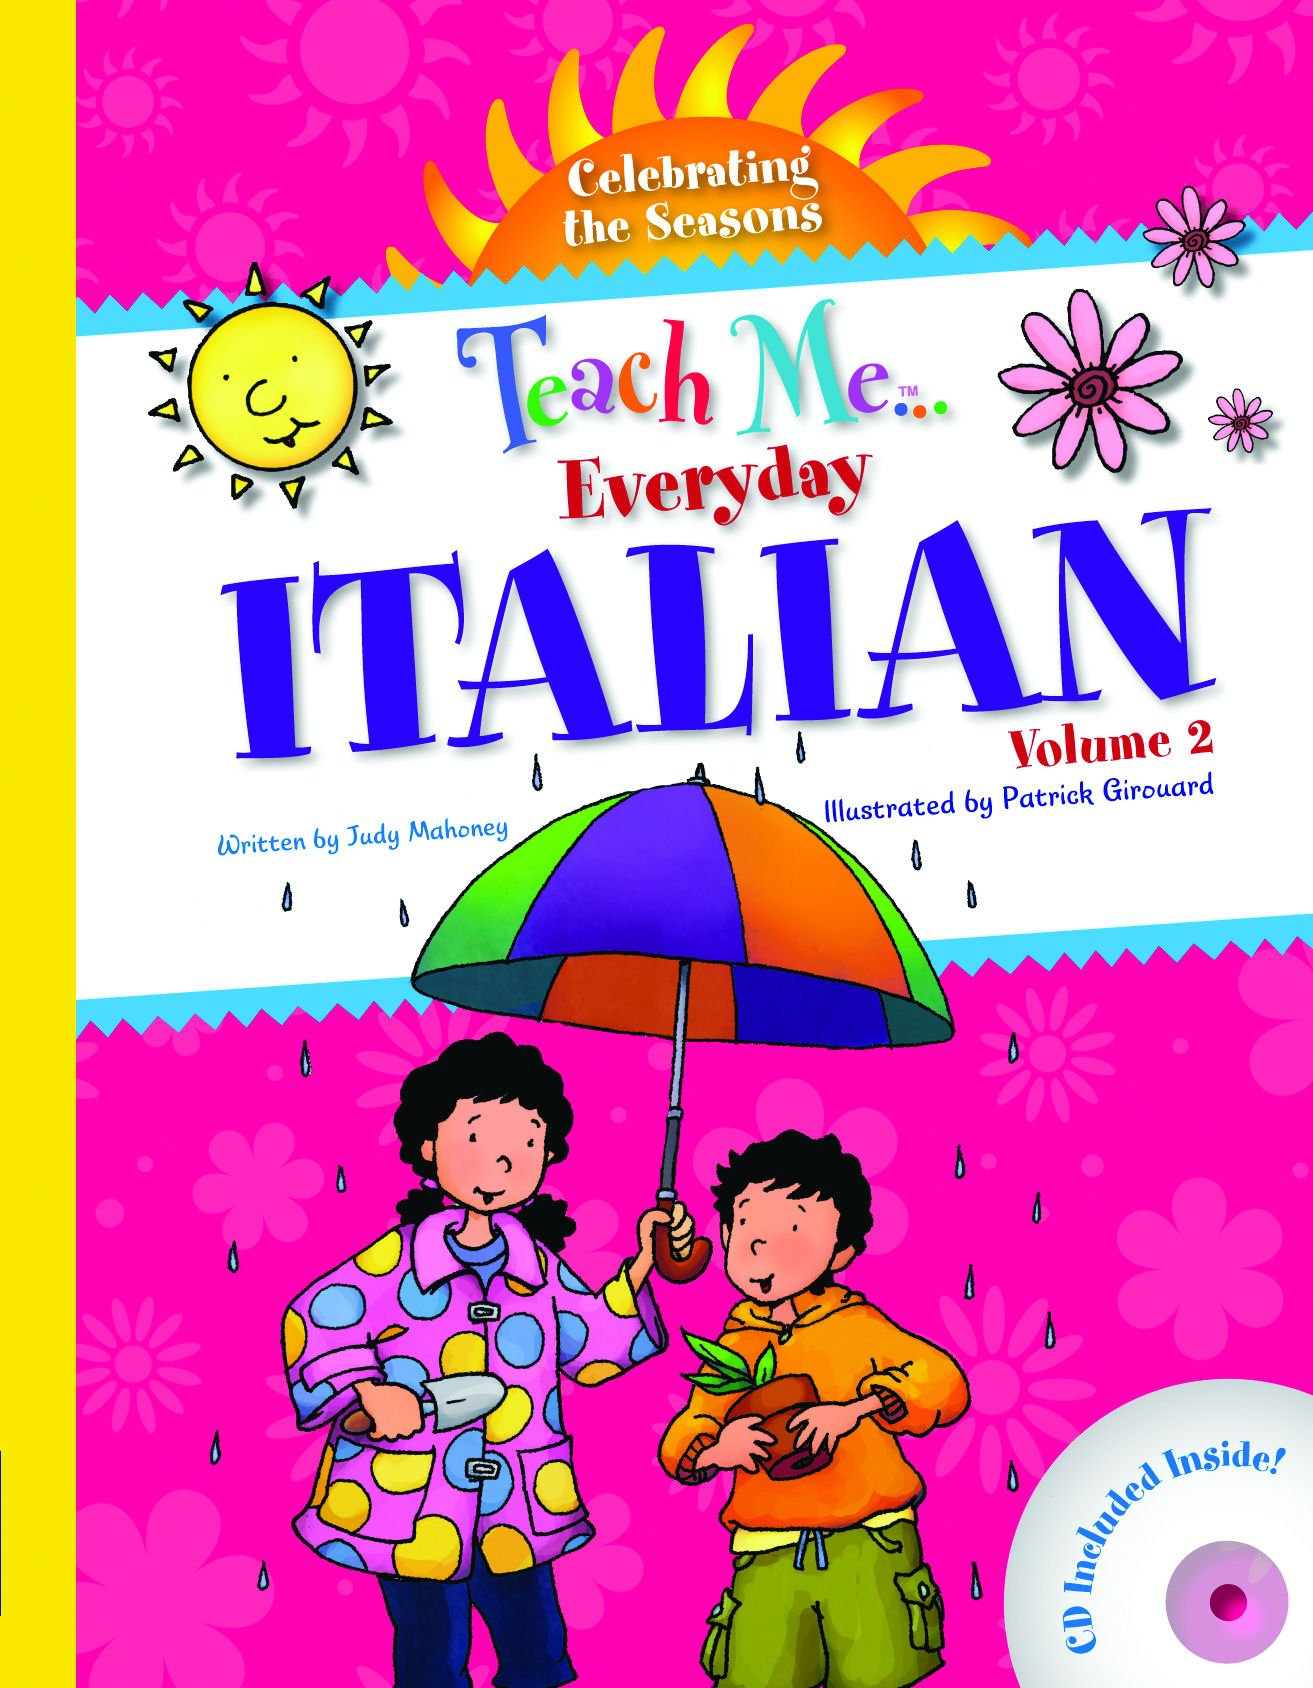 Teach Me Everyday Italian Volume 2 - Celebrating the Seasons (Italian Edition) (Teach Me Everyday Language) (Italian and English Edition) by Brand: Teach Me Tapes Inc